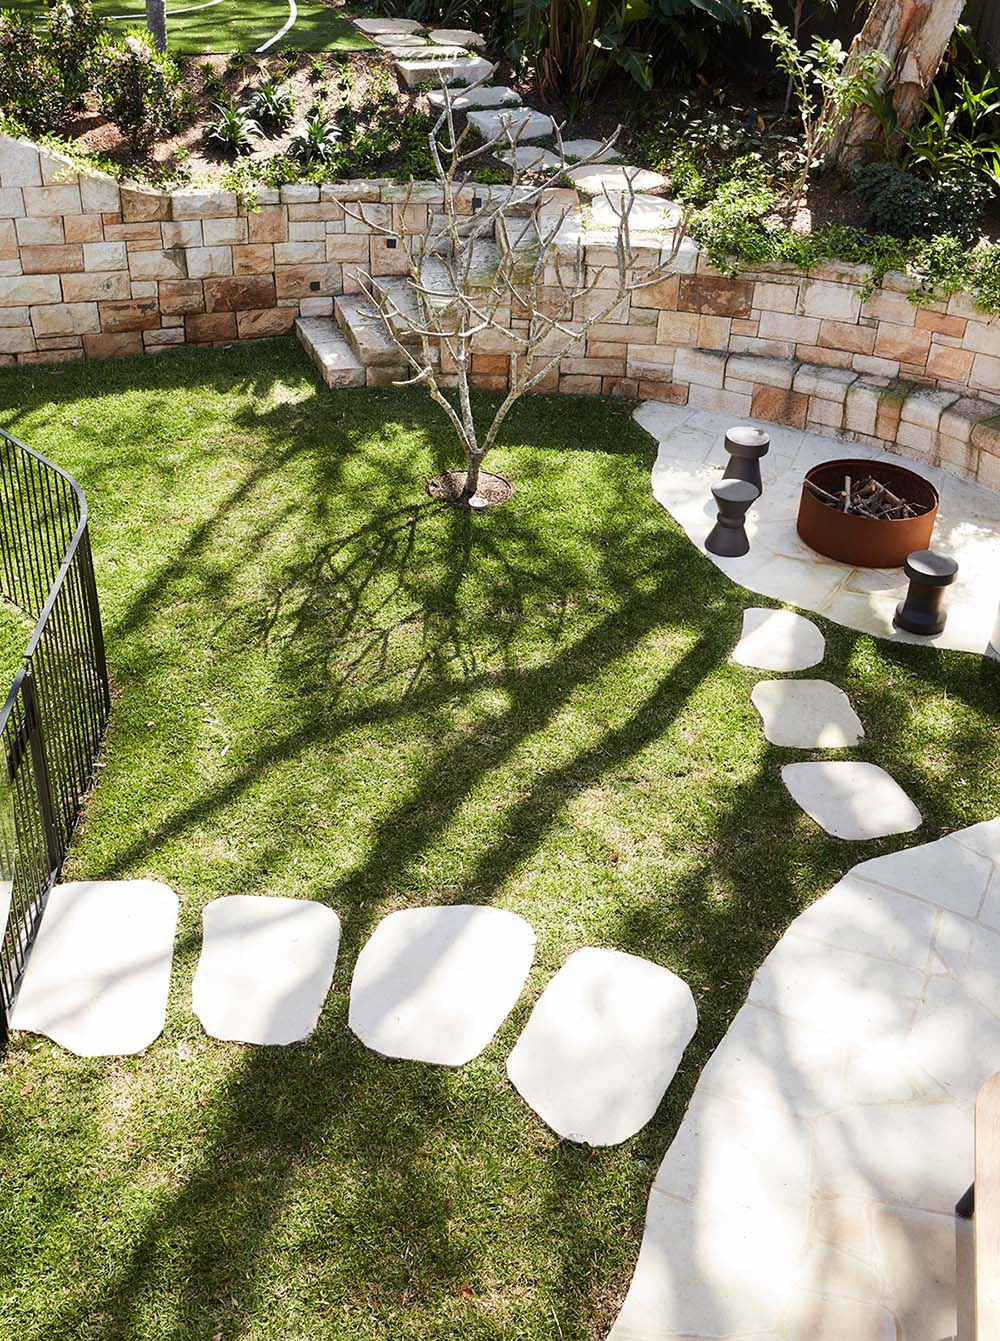 A sandstone wall incorporates seating around a fire pit, and includes steps that lead up to an upper level of the garden.